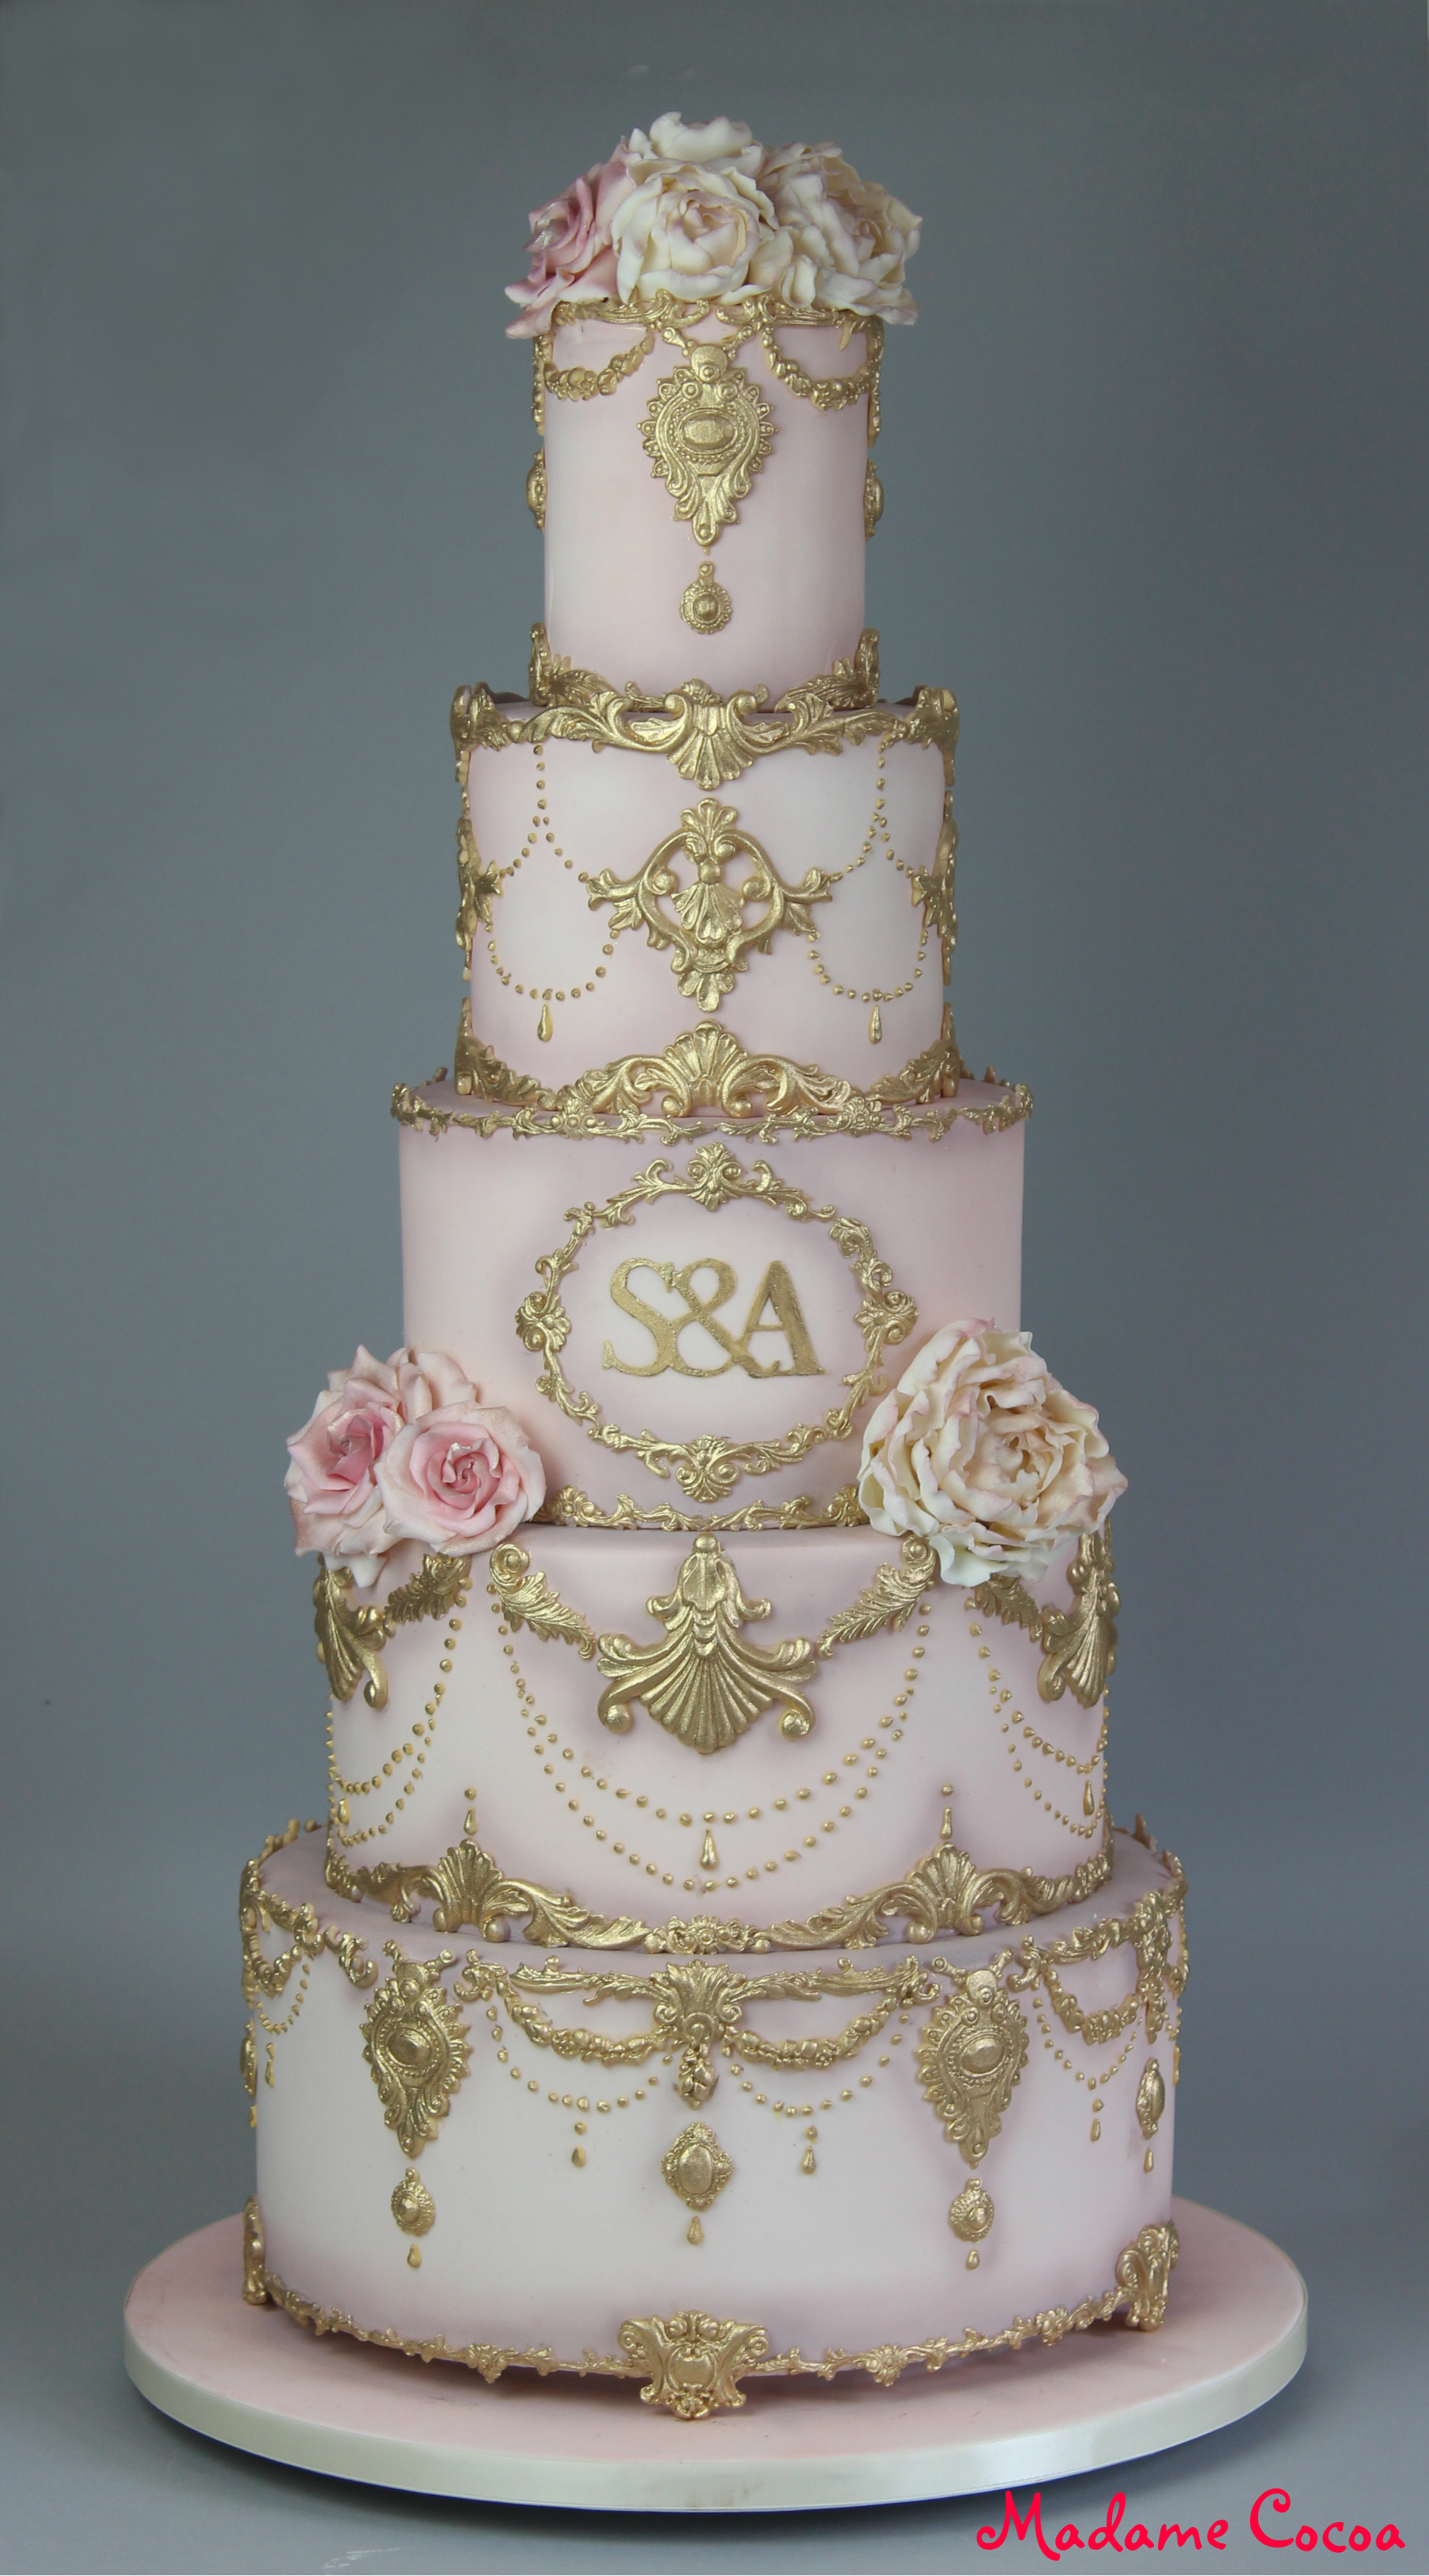 Gold/blush pink ornate wedding cake